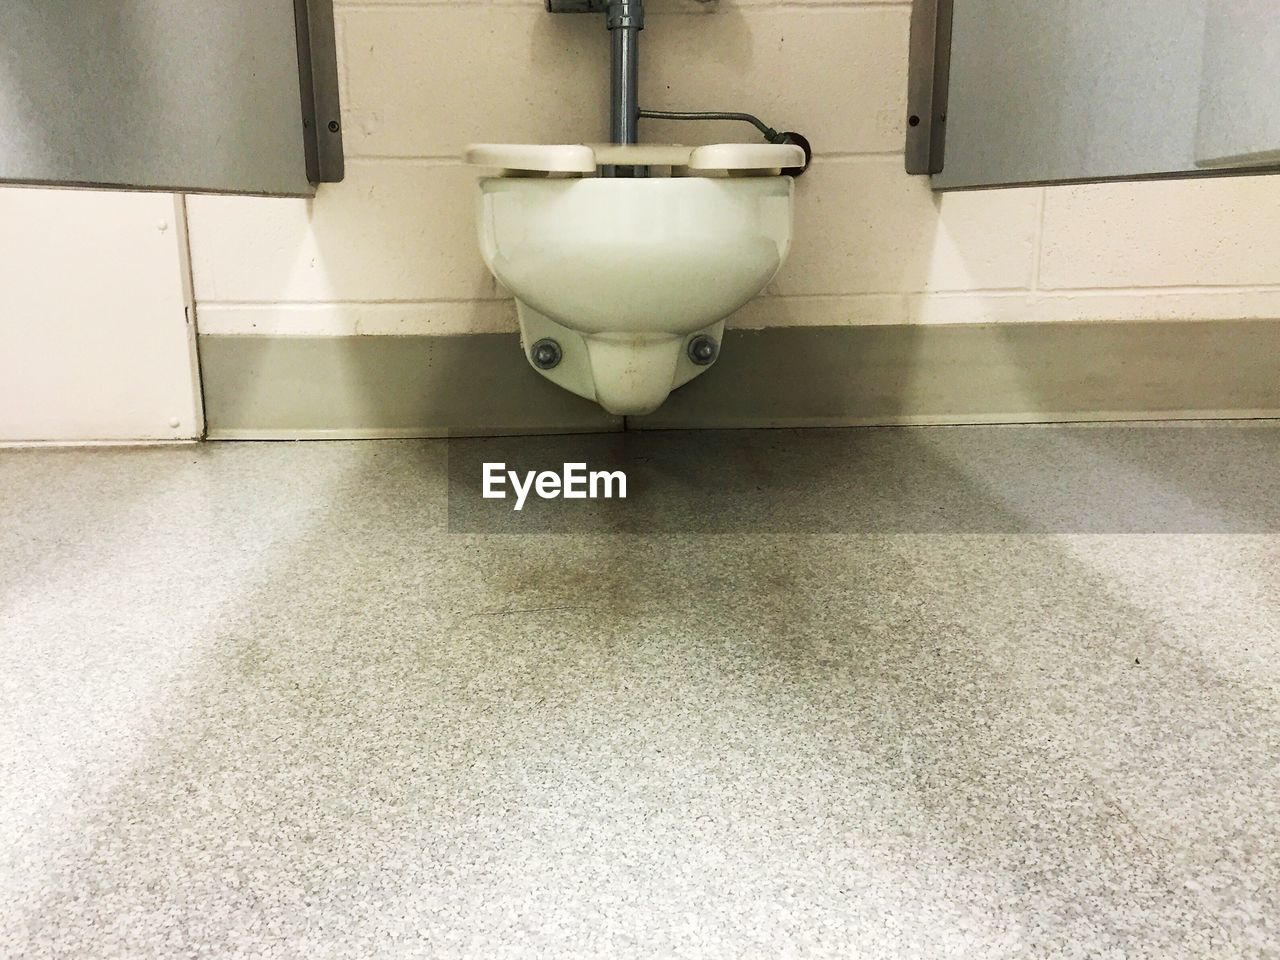 indoors, no people, bathroom, day, toilet bowl, close-up, flushing toilet